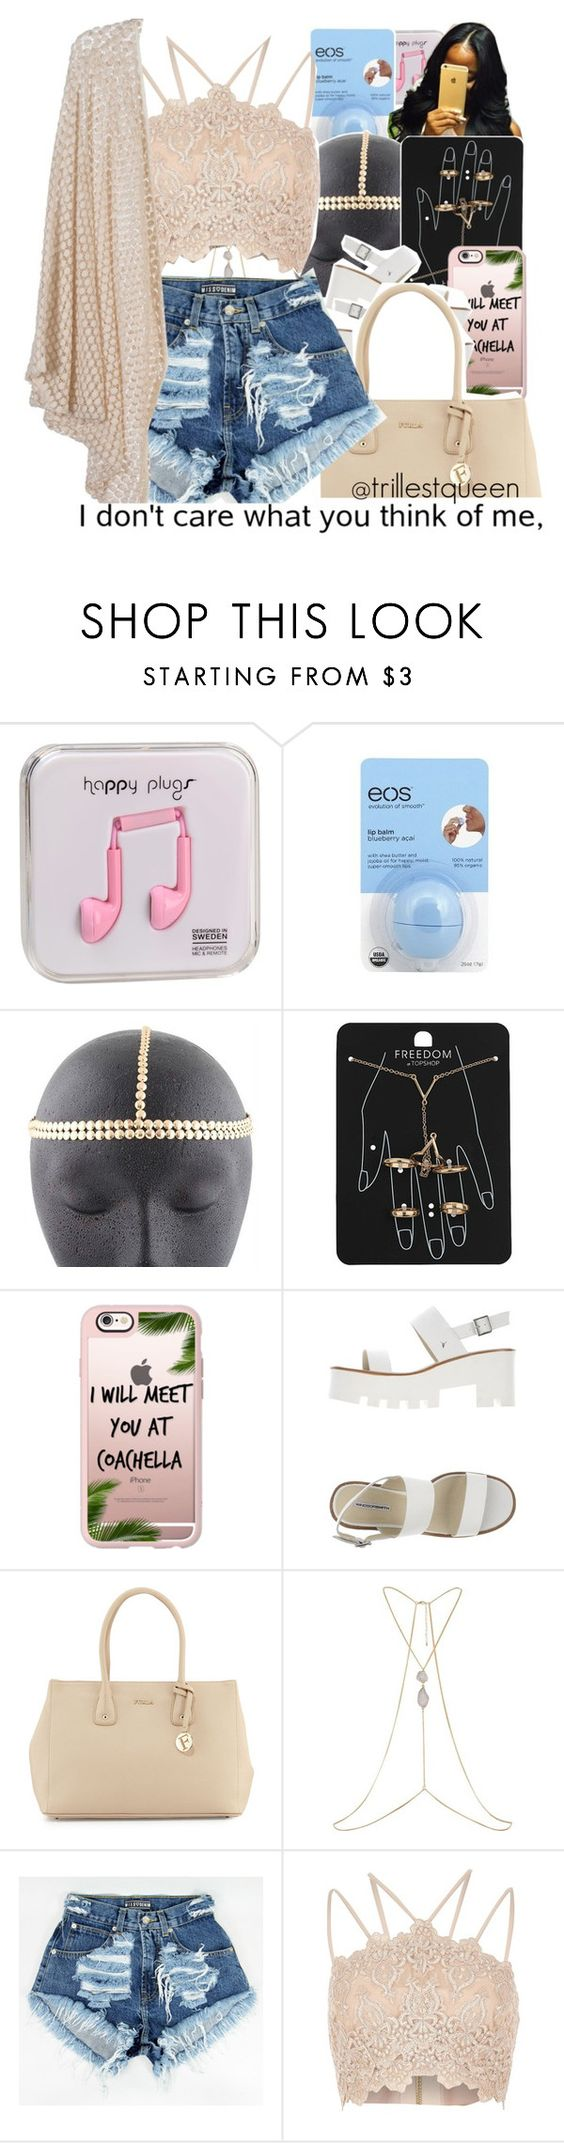 """""""ready for summer 1."""" by trillestqueen ❤ liked on Polyvore featuring Happy Plugs, Eos, Topshop, Casetify, Windsor Smith, Furla and River Island"""